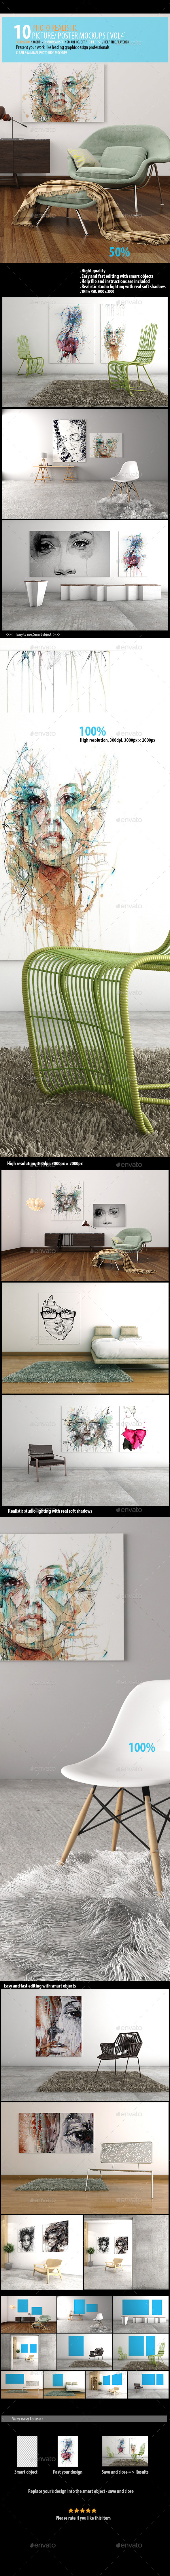 Picture Poster Mockups [vol 4]